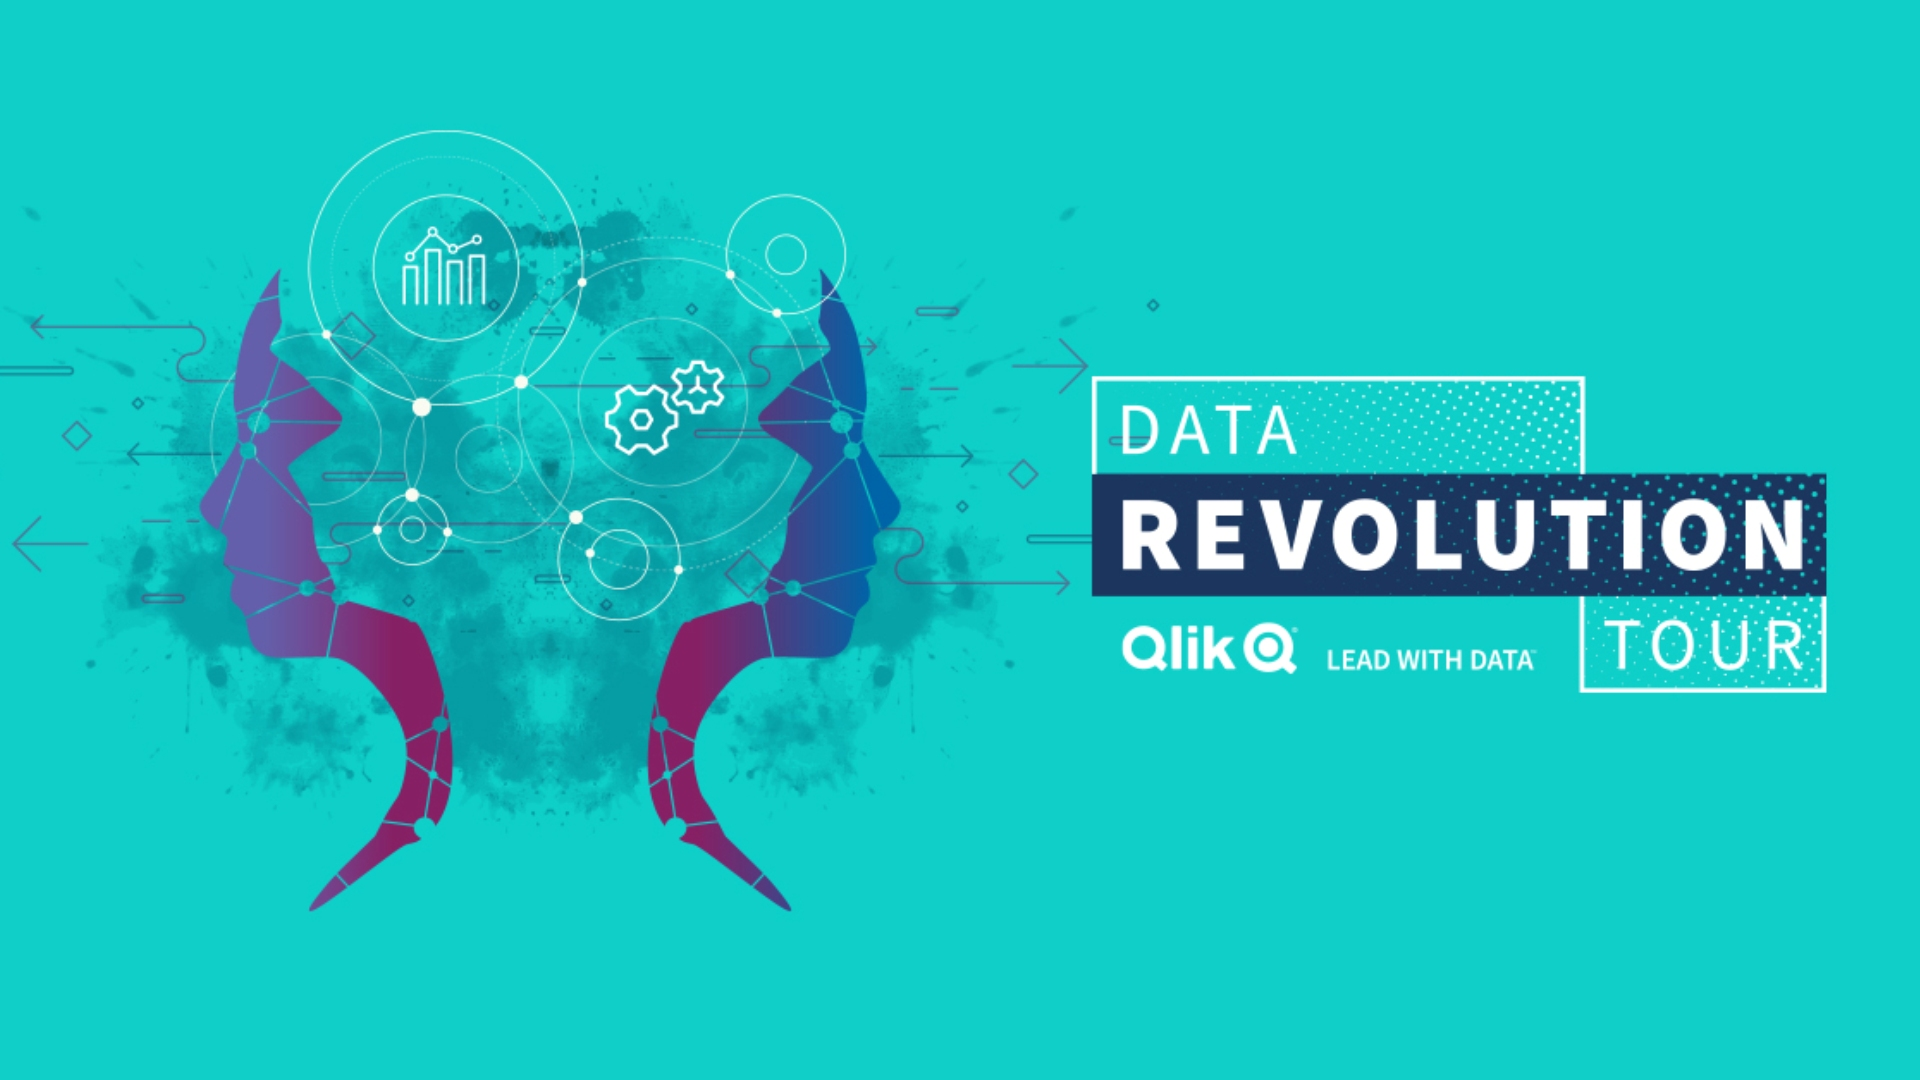 Qlik, the importance of the data